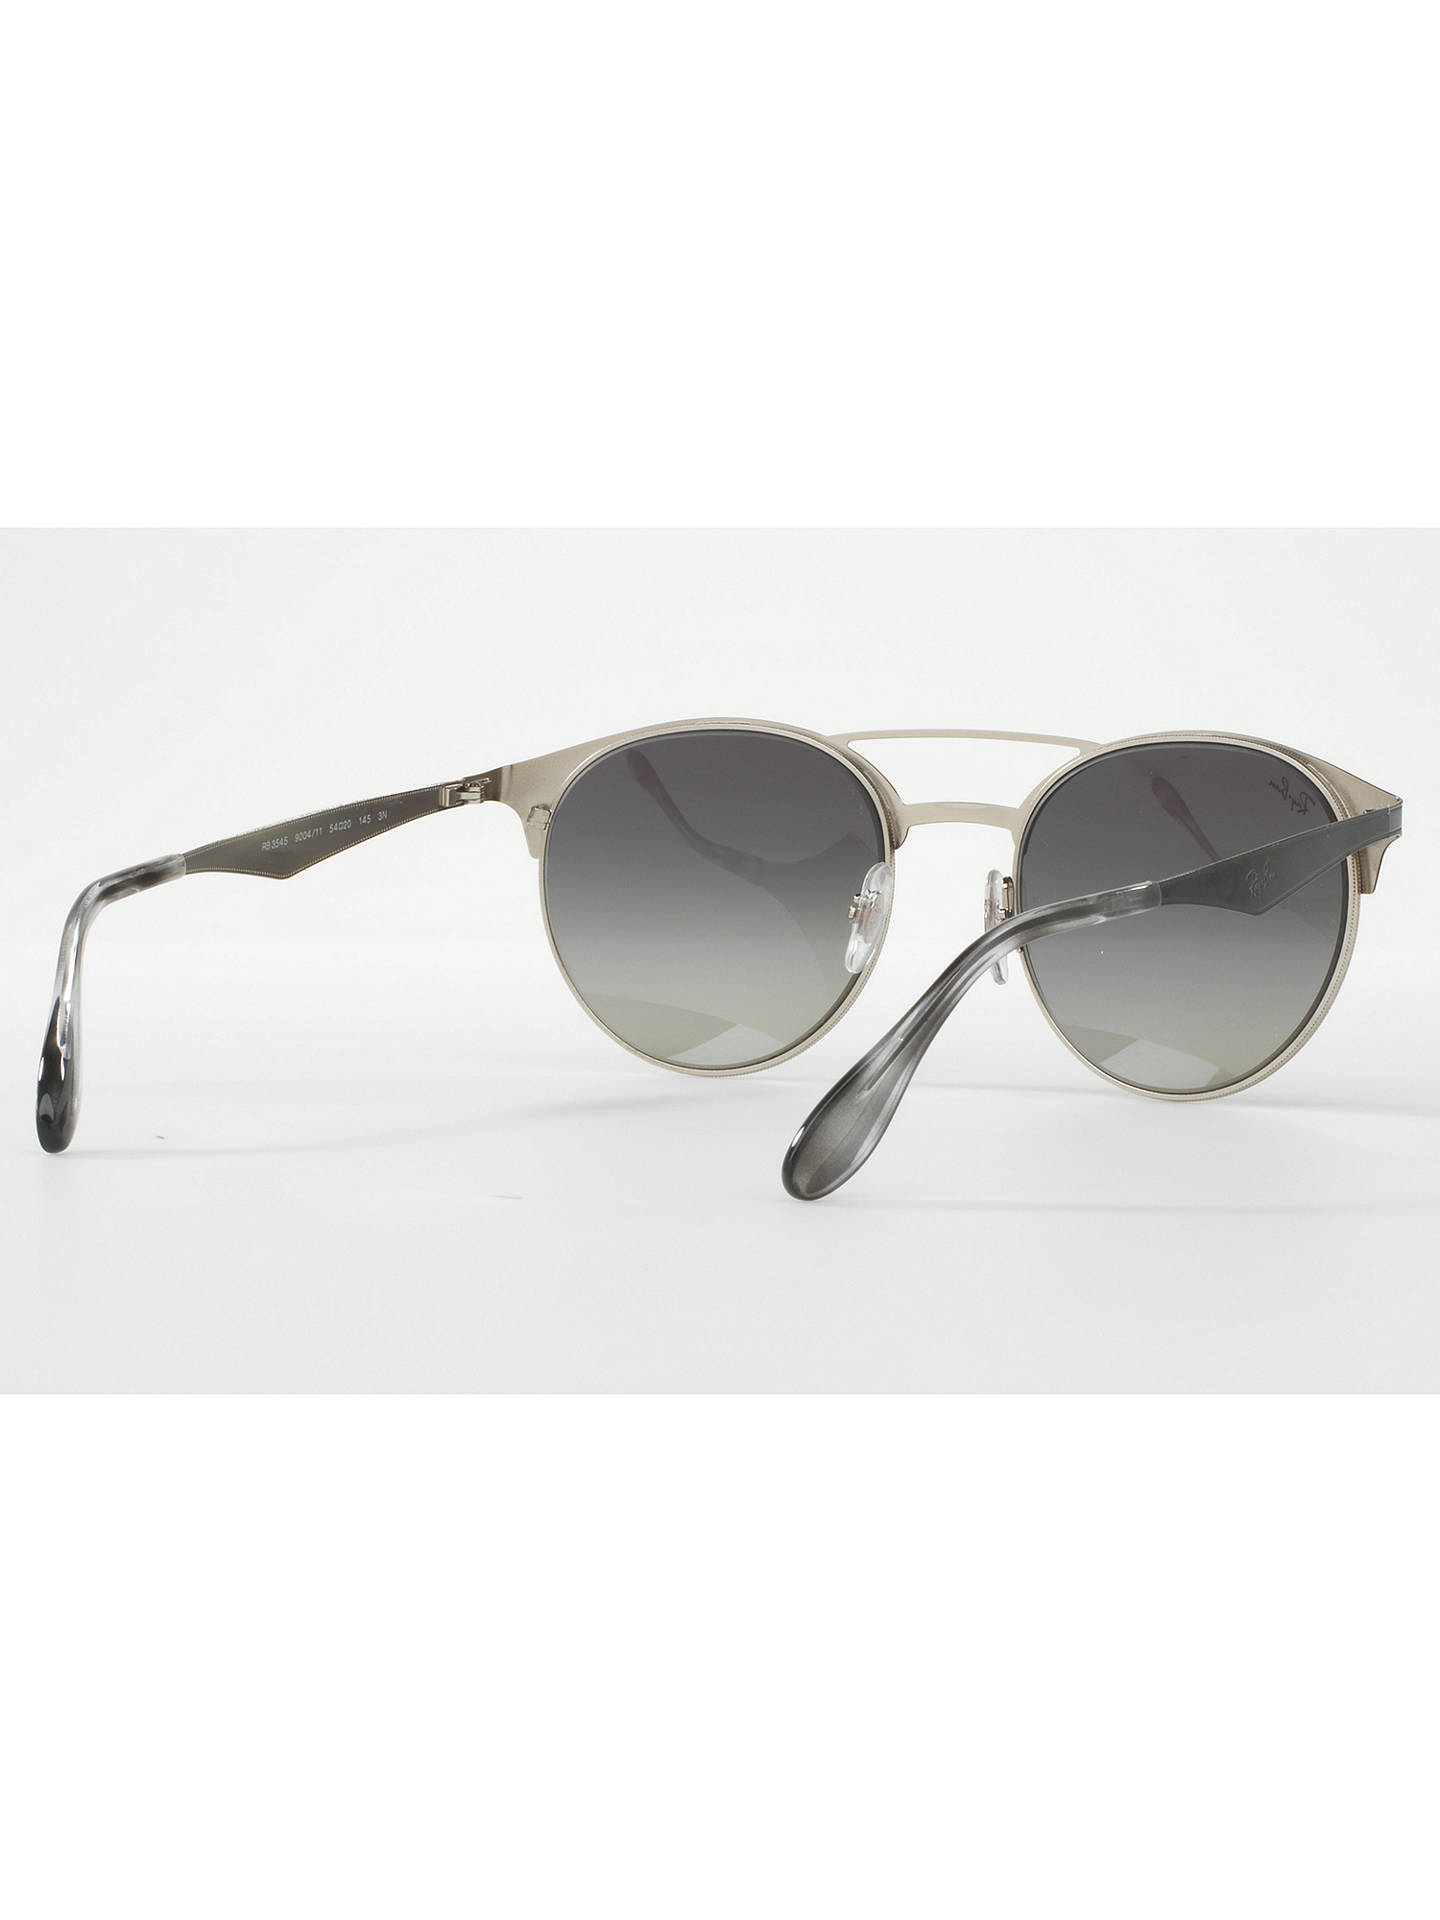 Buy Ray-Ban RB3545 Oval Sunglasses, Black/Grey Gradient Online at johnlewis.com